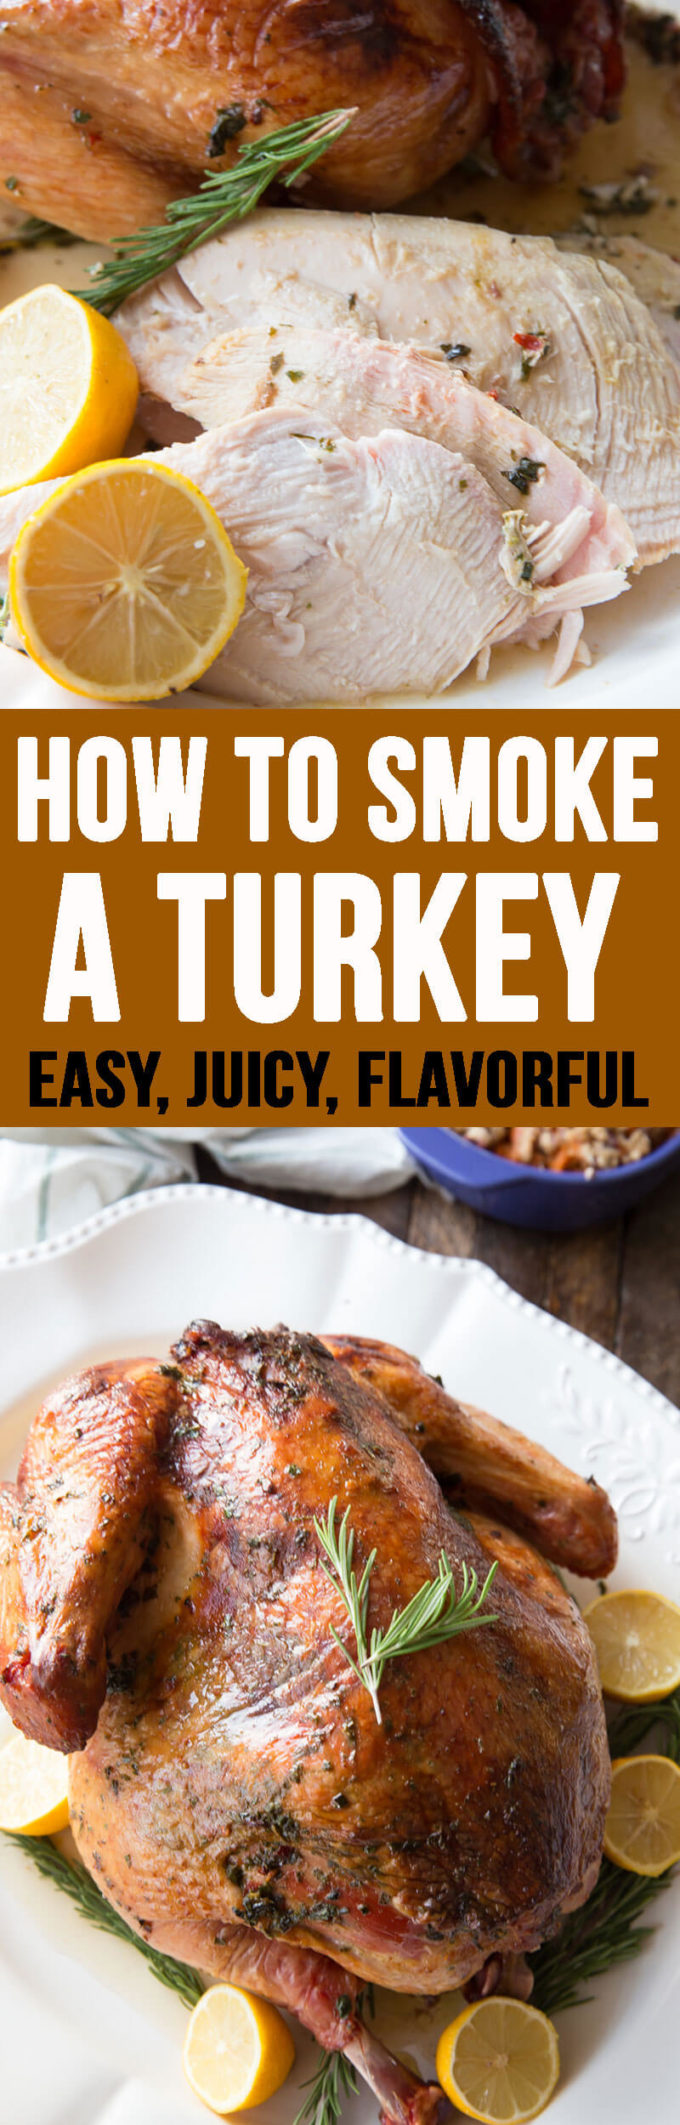 How Long to Smoke a Turkey: The perfect way to create juicy, flavorful, mouthwatering turkey for Thanksgiving, or any other time of year! This is hands down the best turkey I have ever had.